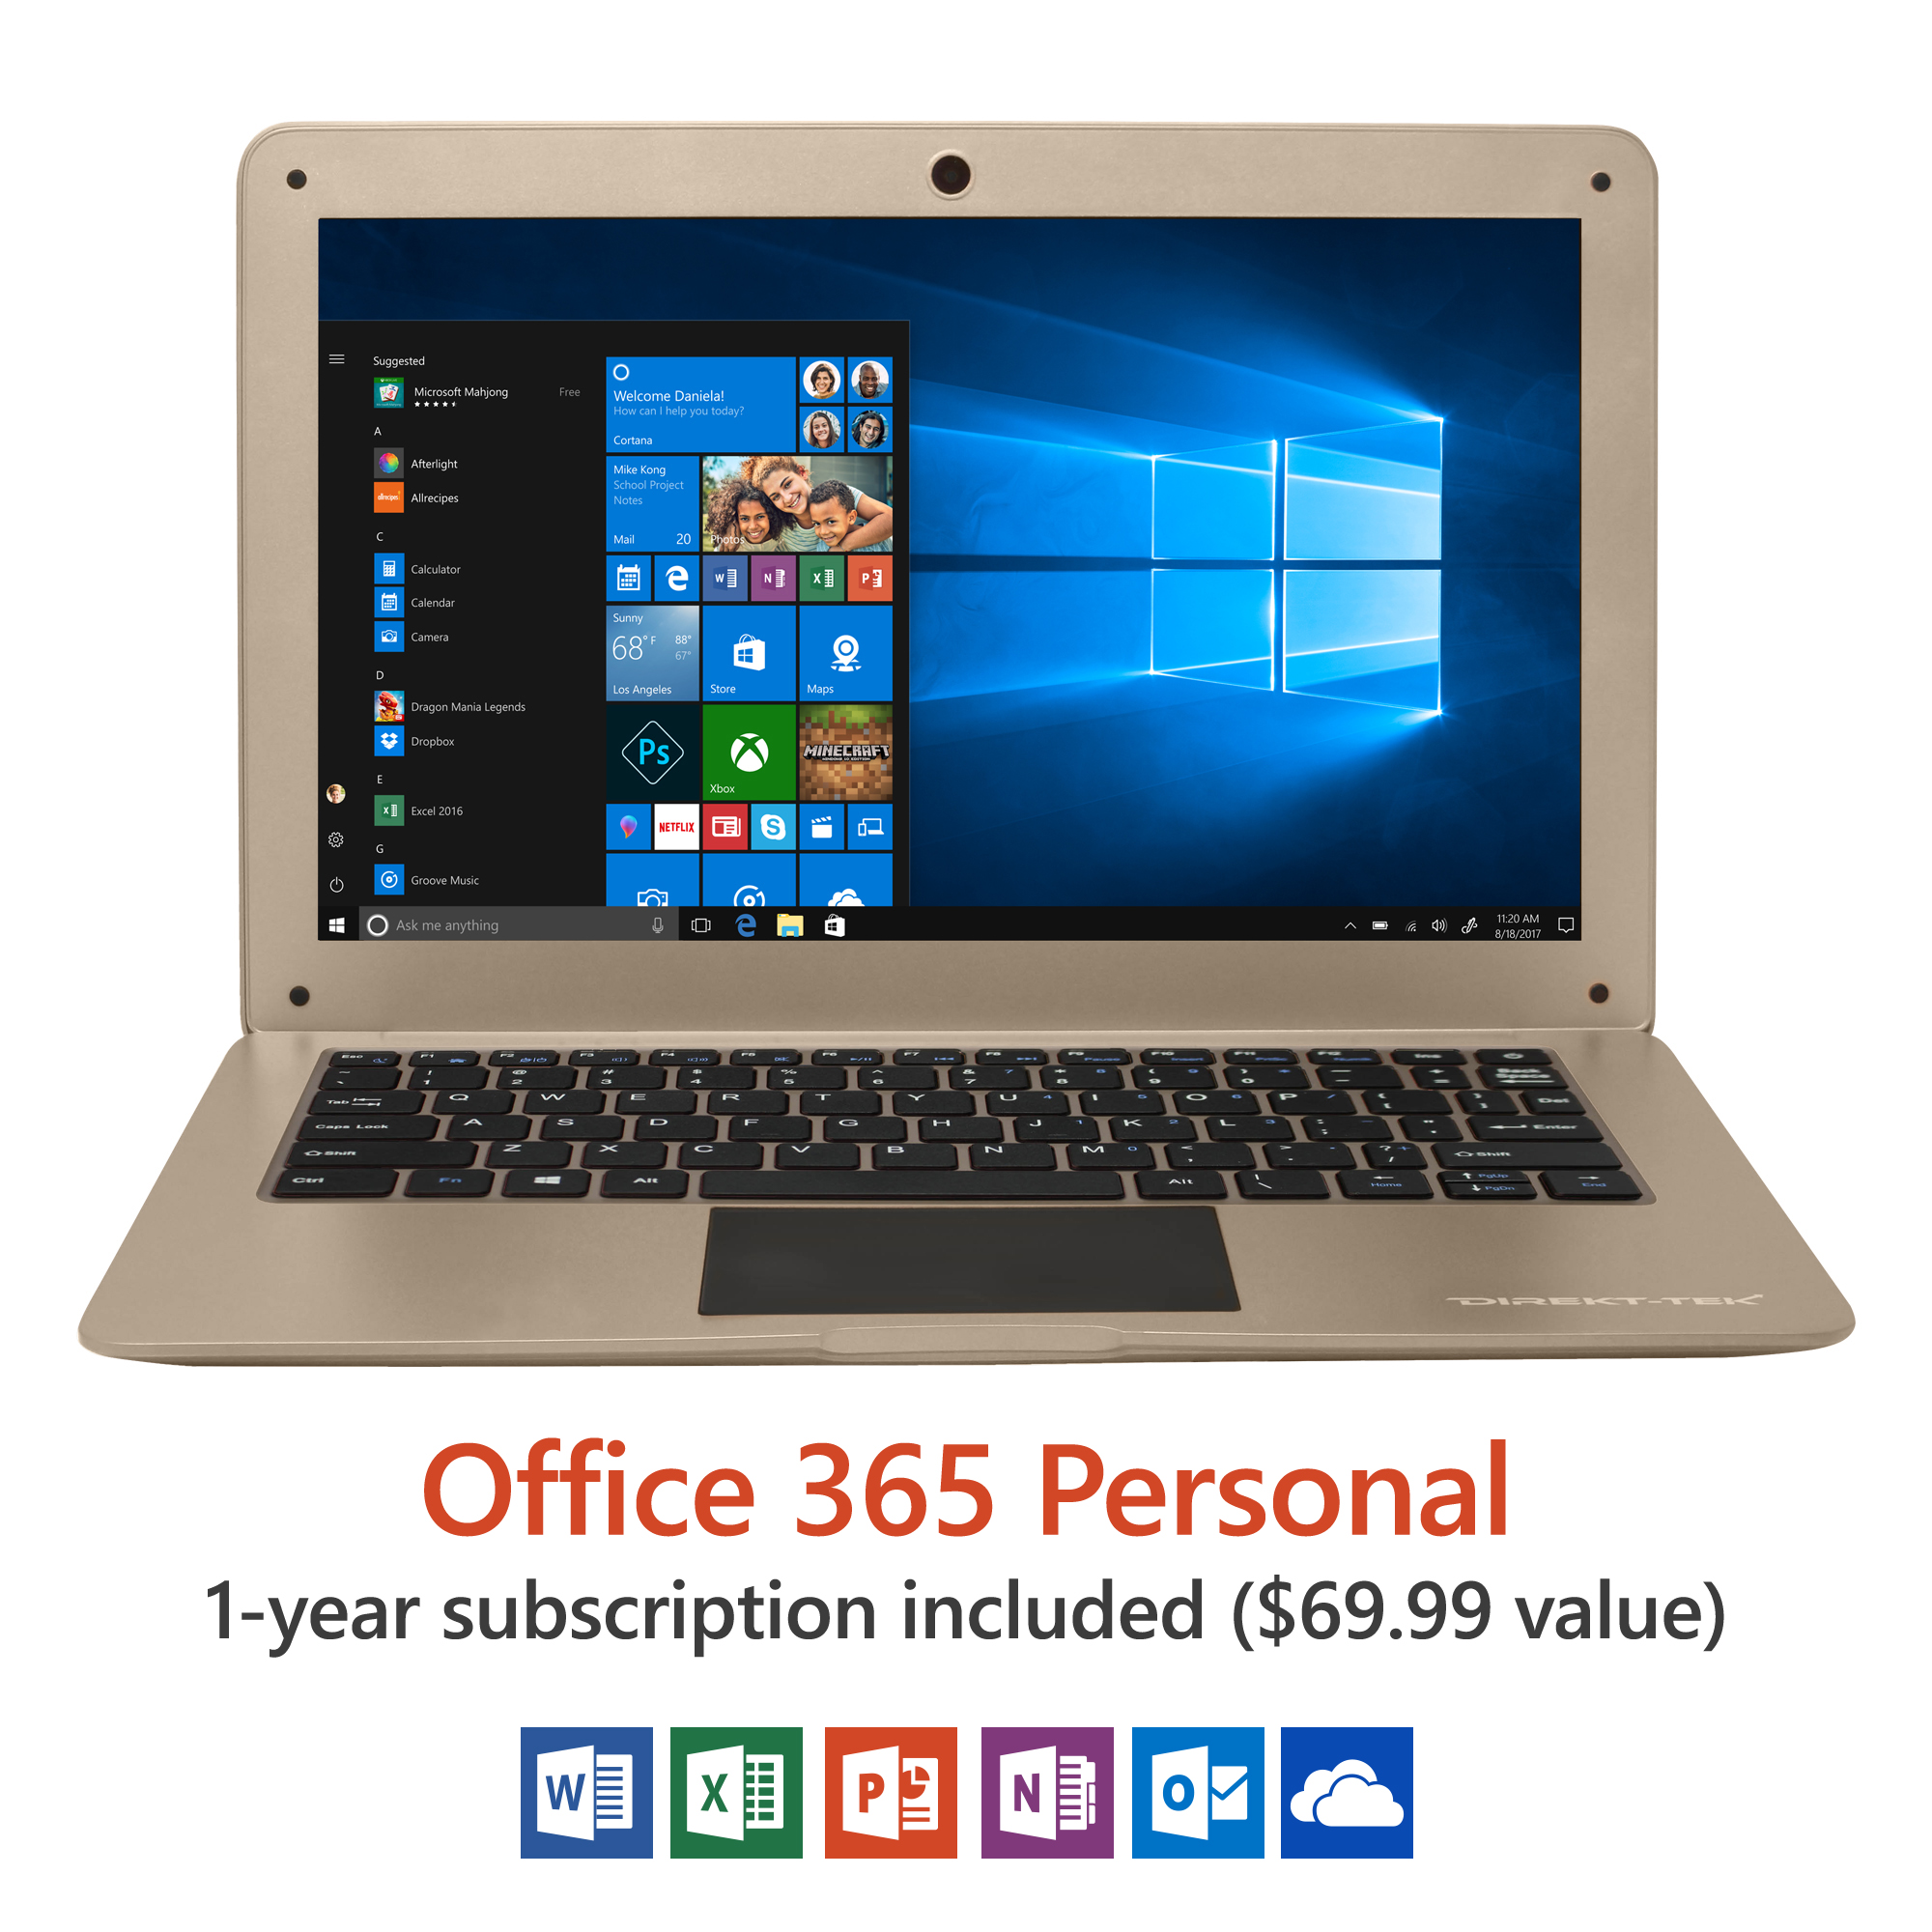 """14"""" Ultra Slim Laptop, Windows 10 Home, Office 365 Personal 1-Year Subscription Included ($69.99 Value), Full HD, Intel Processor, 32GB storage, Front camera with 10 hour battery"""